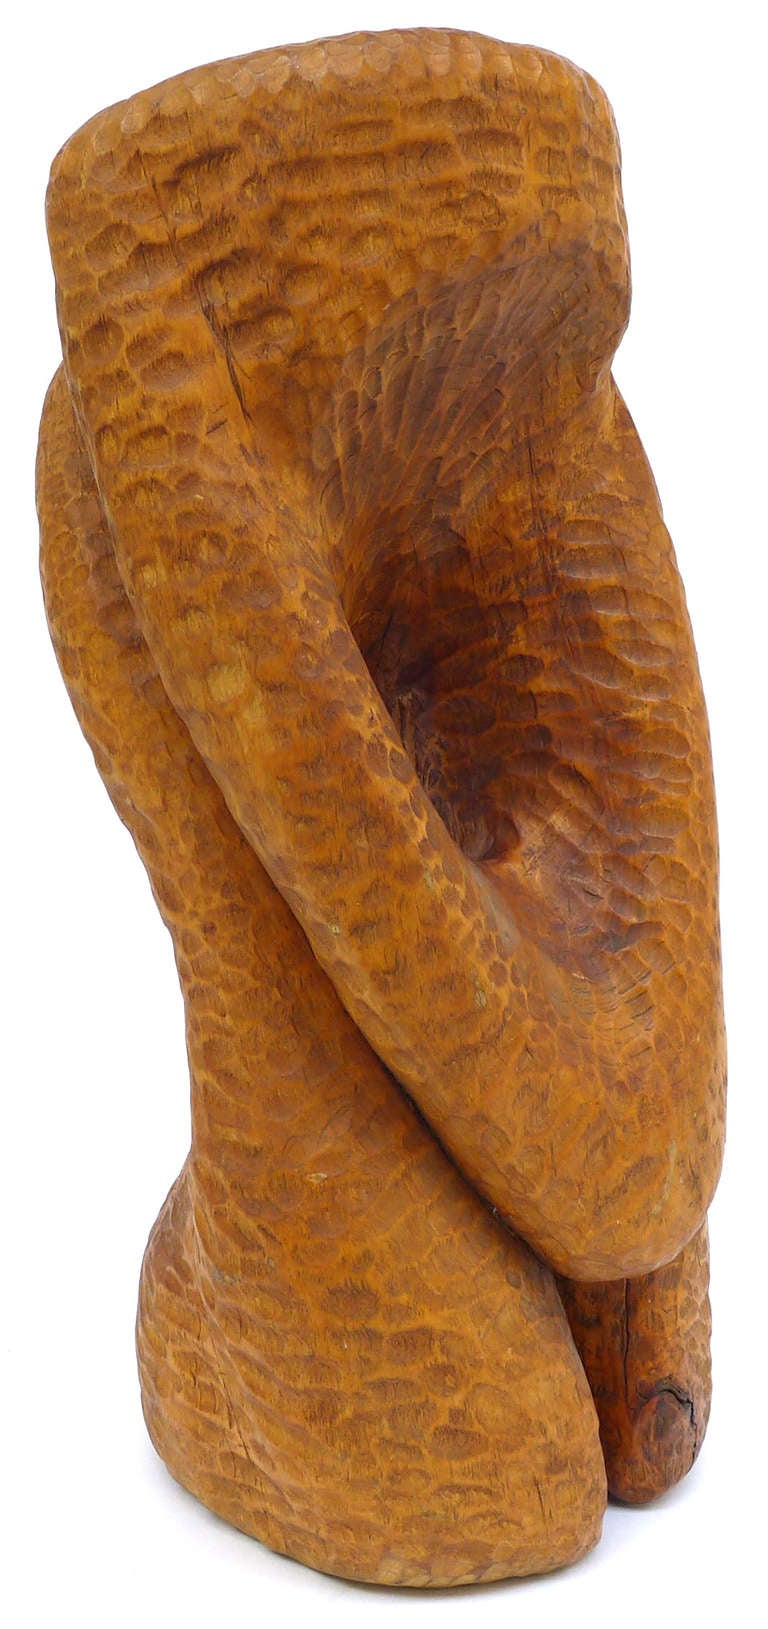 A fantastic and large biomorphic chip carved wood sculpture by the New England sculptor, Barbara Chappel. A wonderfully organic form with a carved perforation and spectacular, complex surface. Beautifully executed. Unsigned.